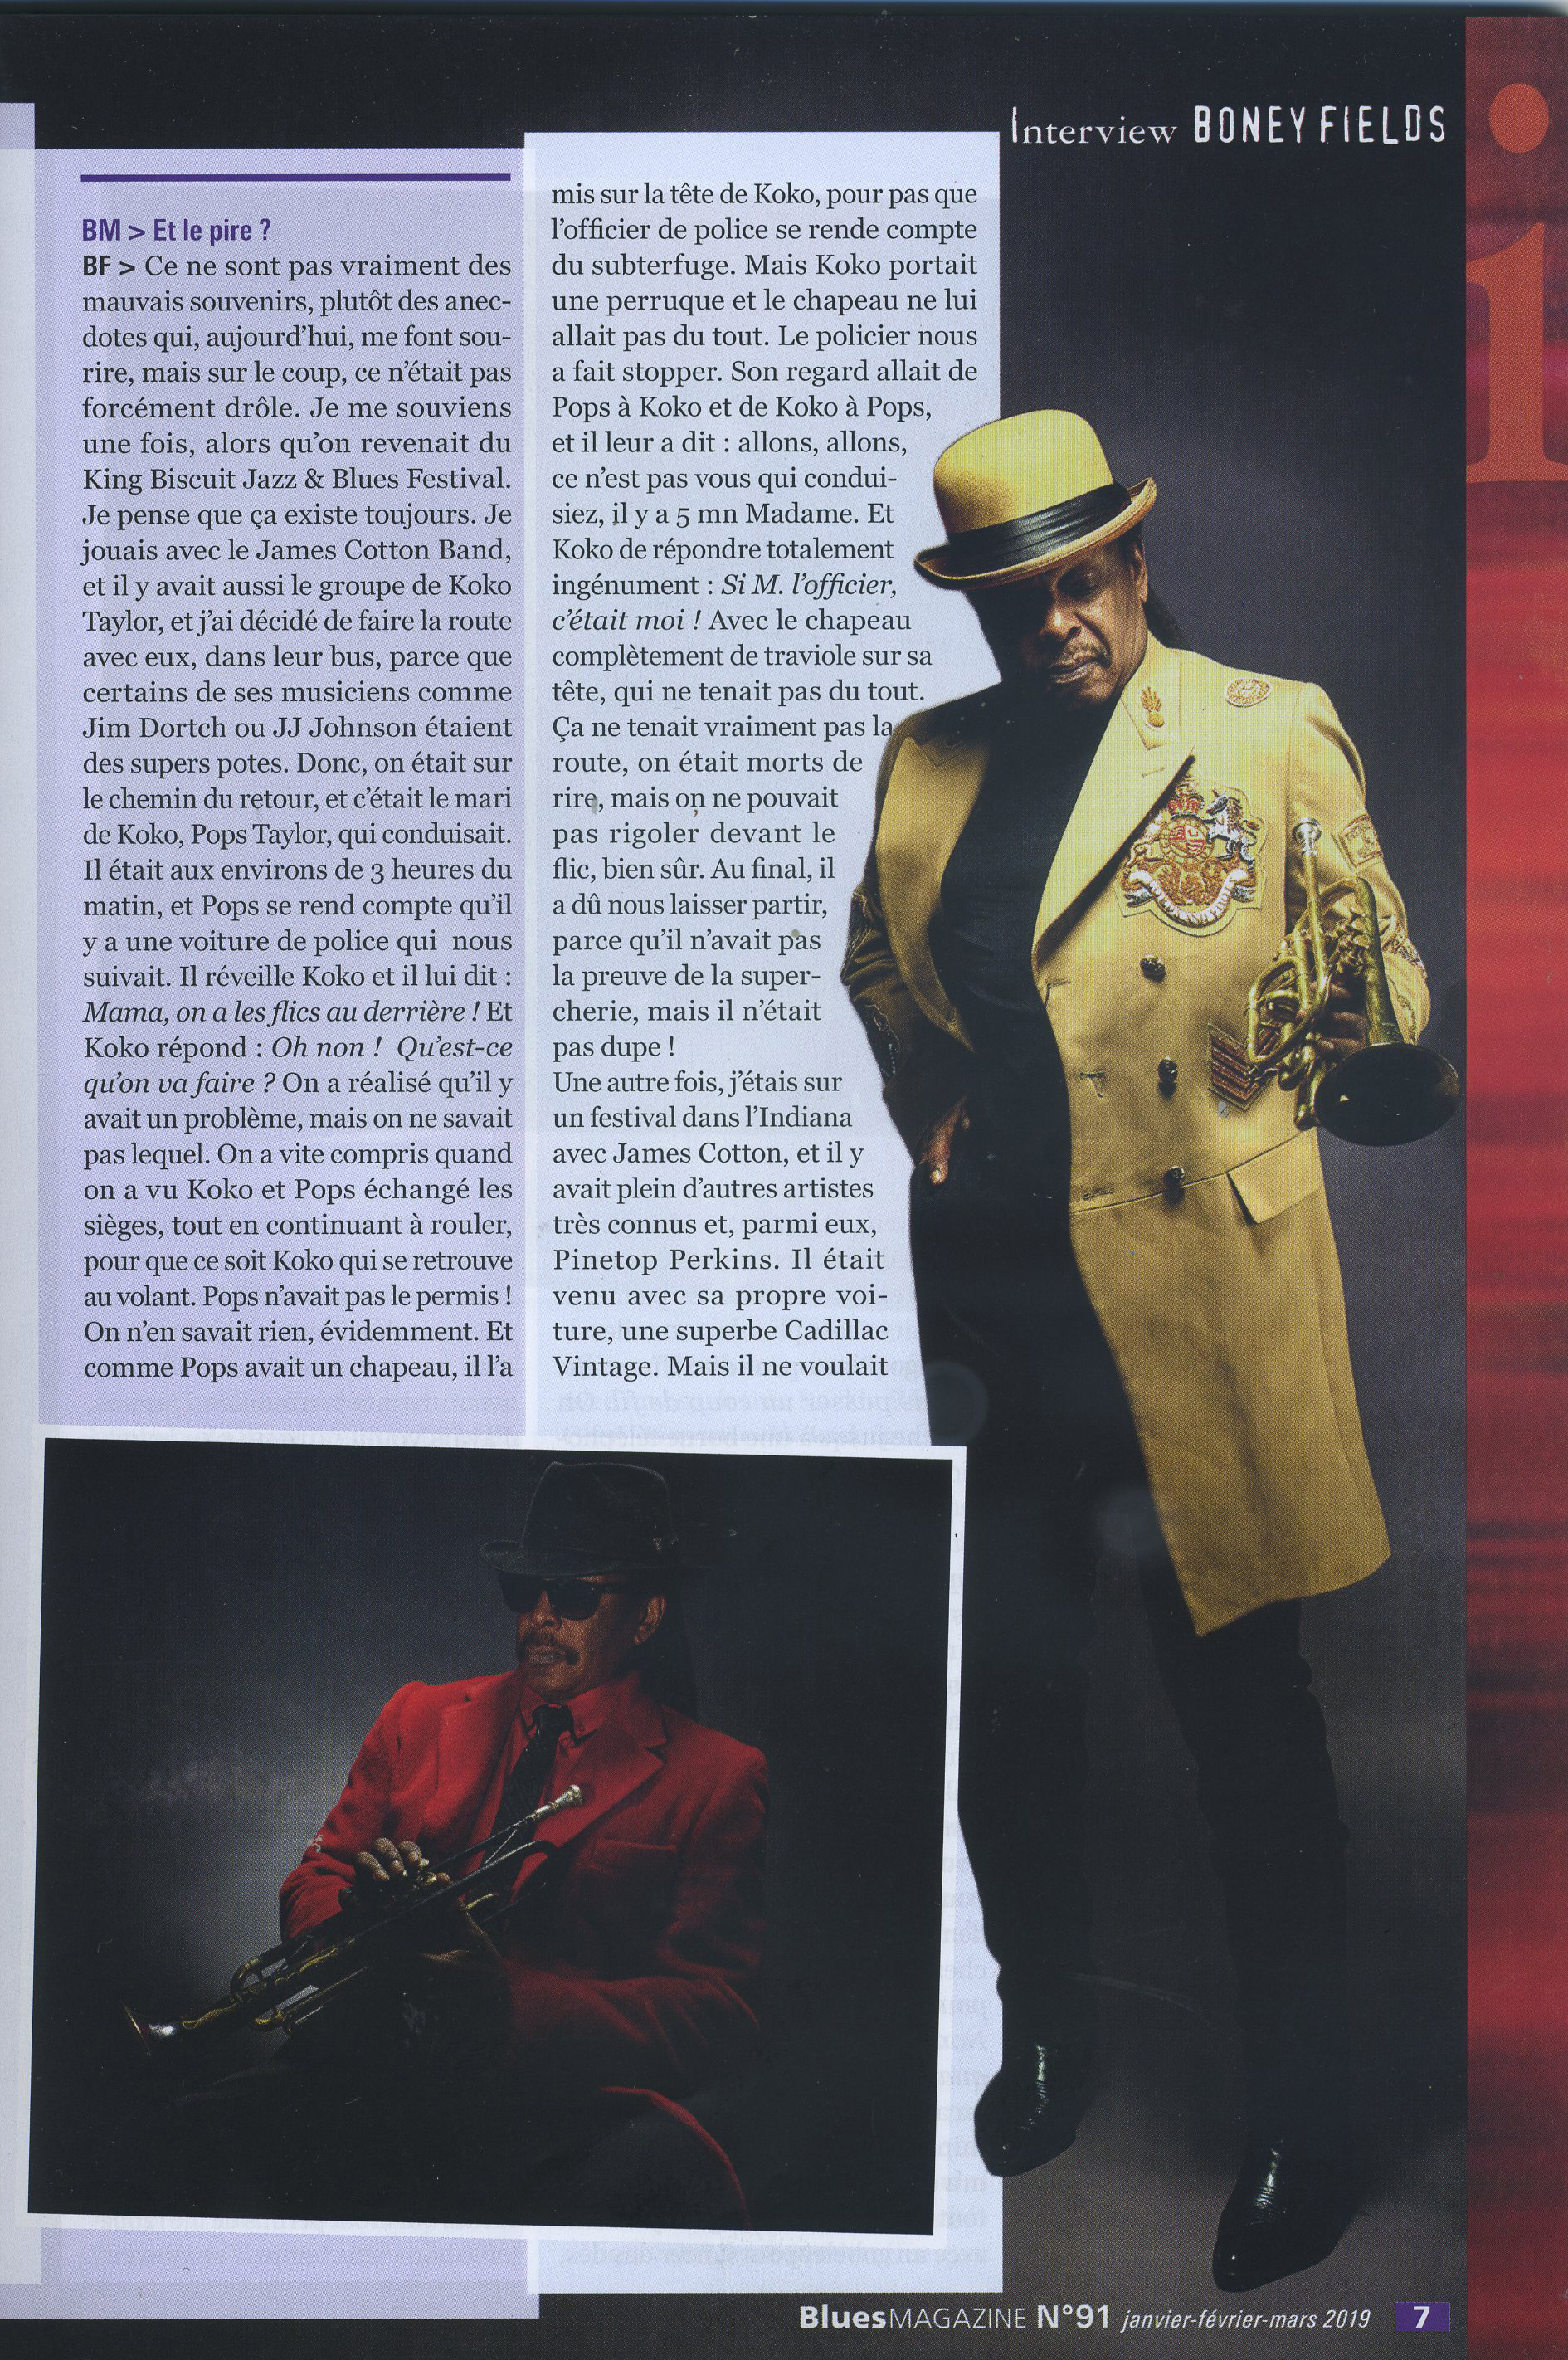 ITW BluesMag Page 4